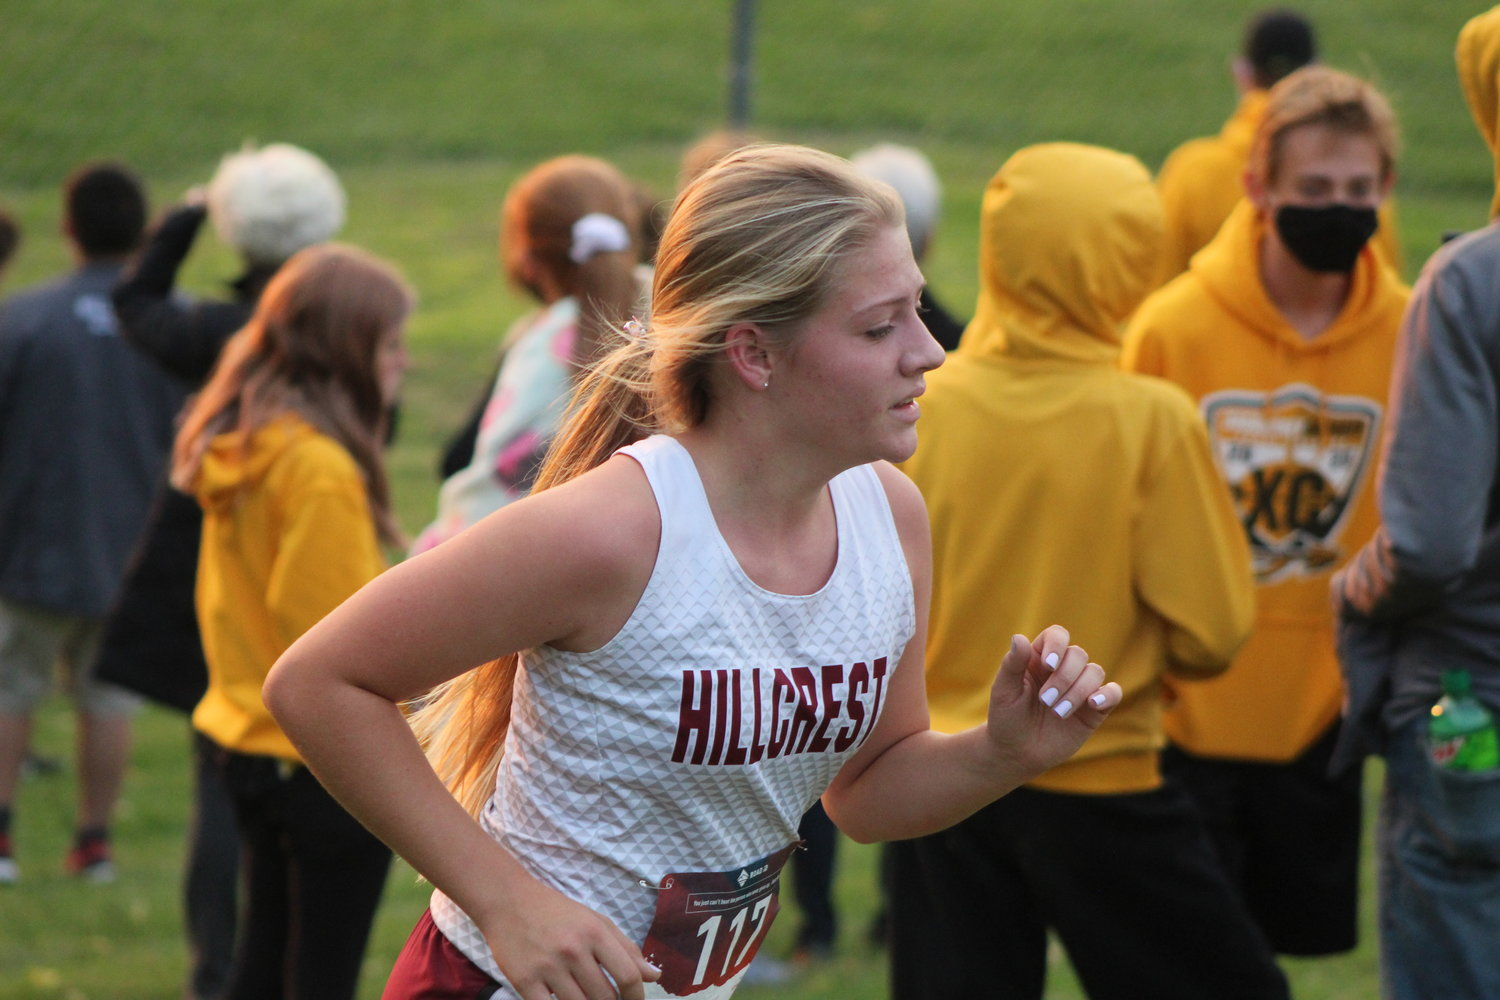 Kennedy Roth of Hillcrest Academy heads up a hill and toward the finish line in Monday's girls varsity race.